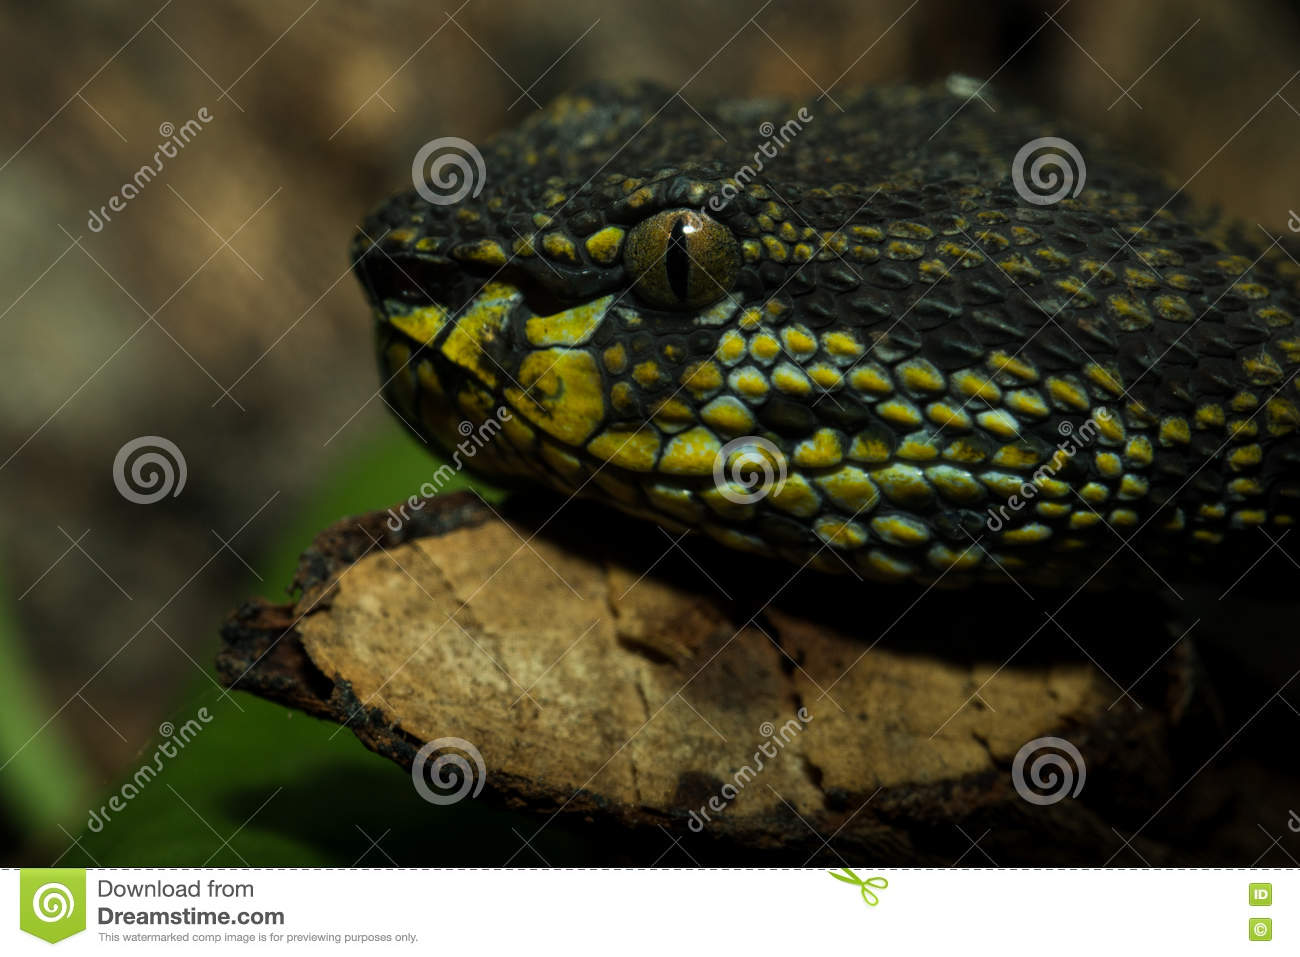 Shore pit viper snake stock image  Image of scary, black